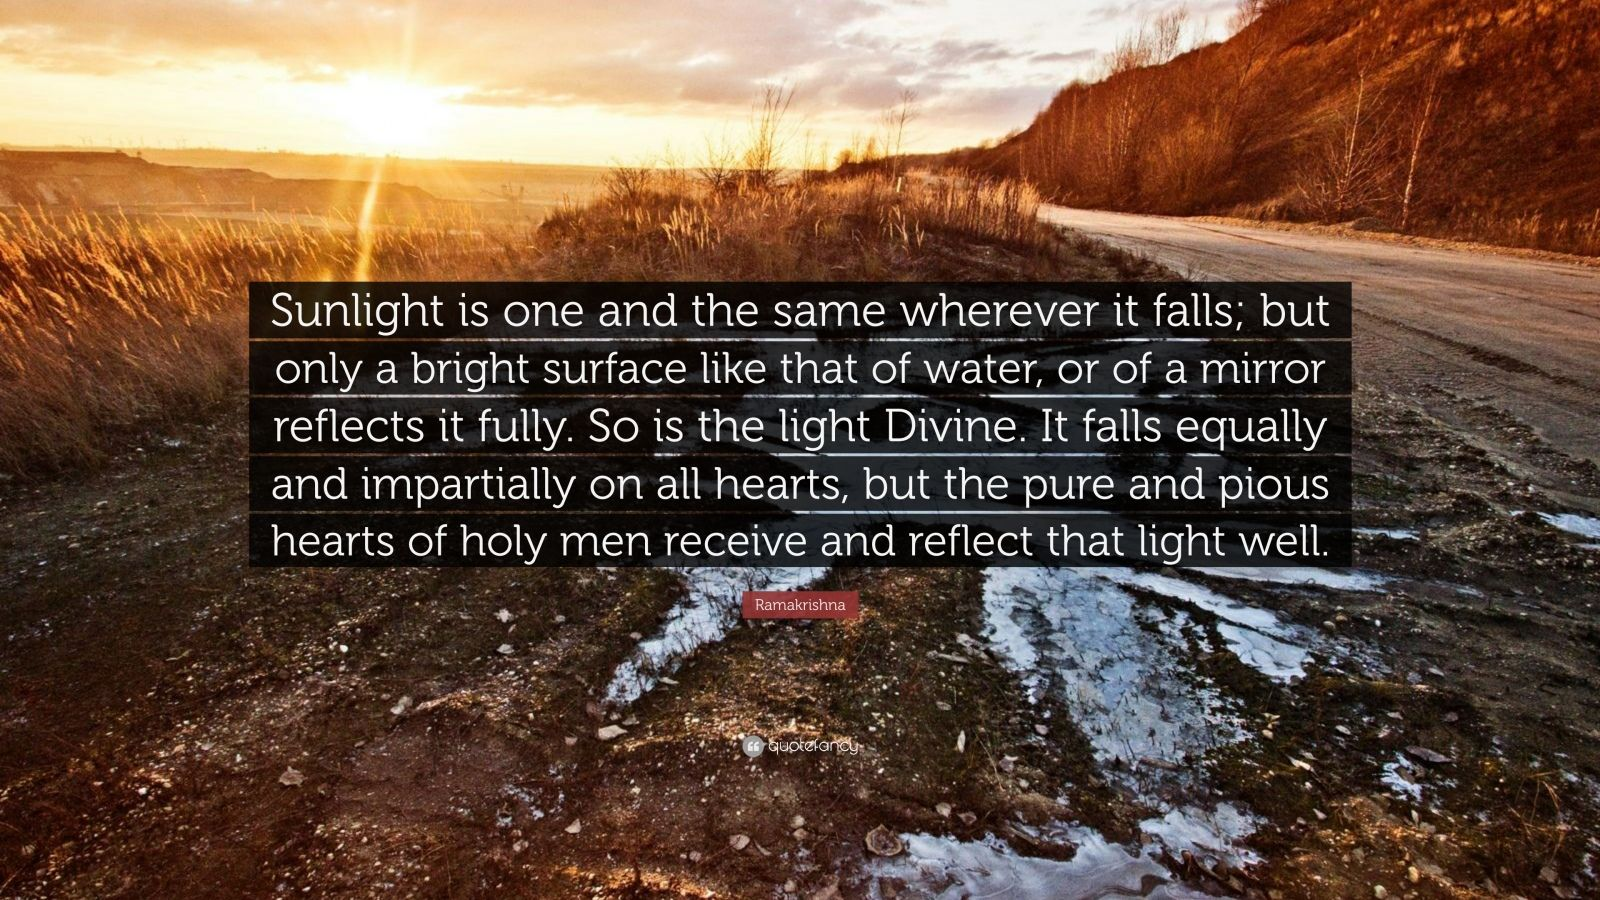 """Ramakrishna Quote: """"Sunlight is one and the same wherever it falls; but only a bright surface like that of water, or of a mirror reflects it fully. So is the light Divine. It falls equally and impartially on all hearts, but the pure and pious hearts of holy men receive and reflect that light well."""""""